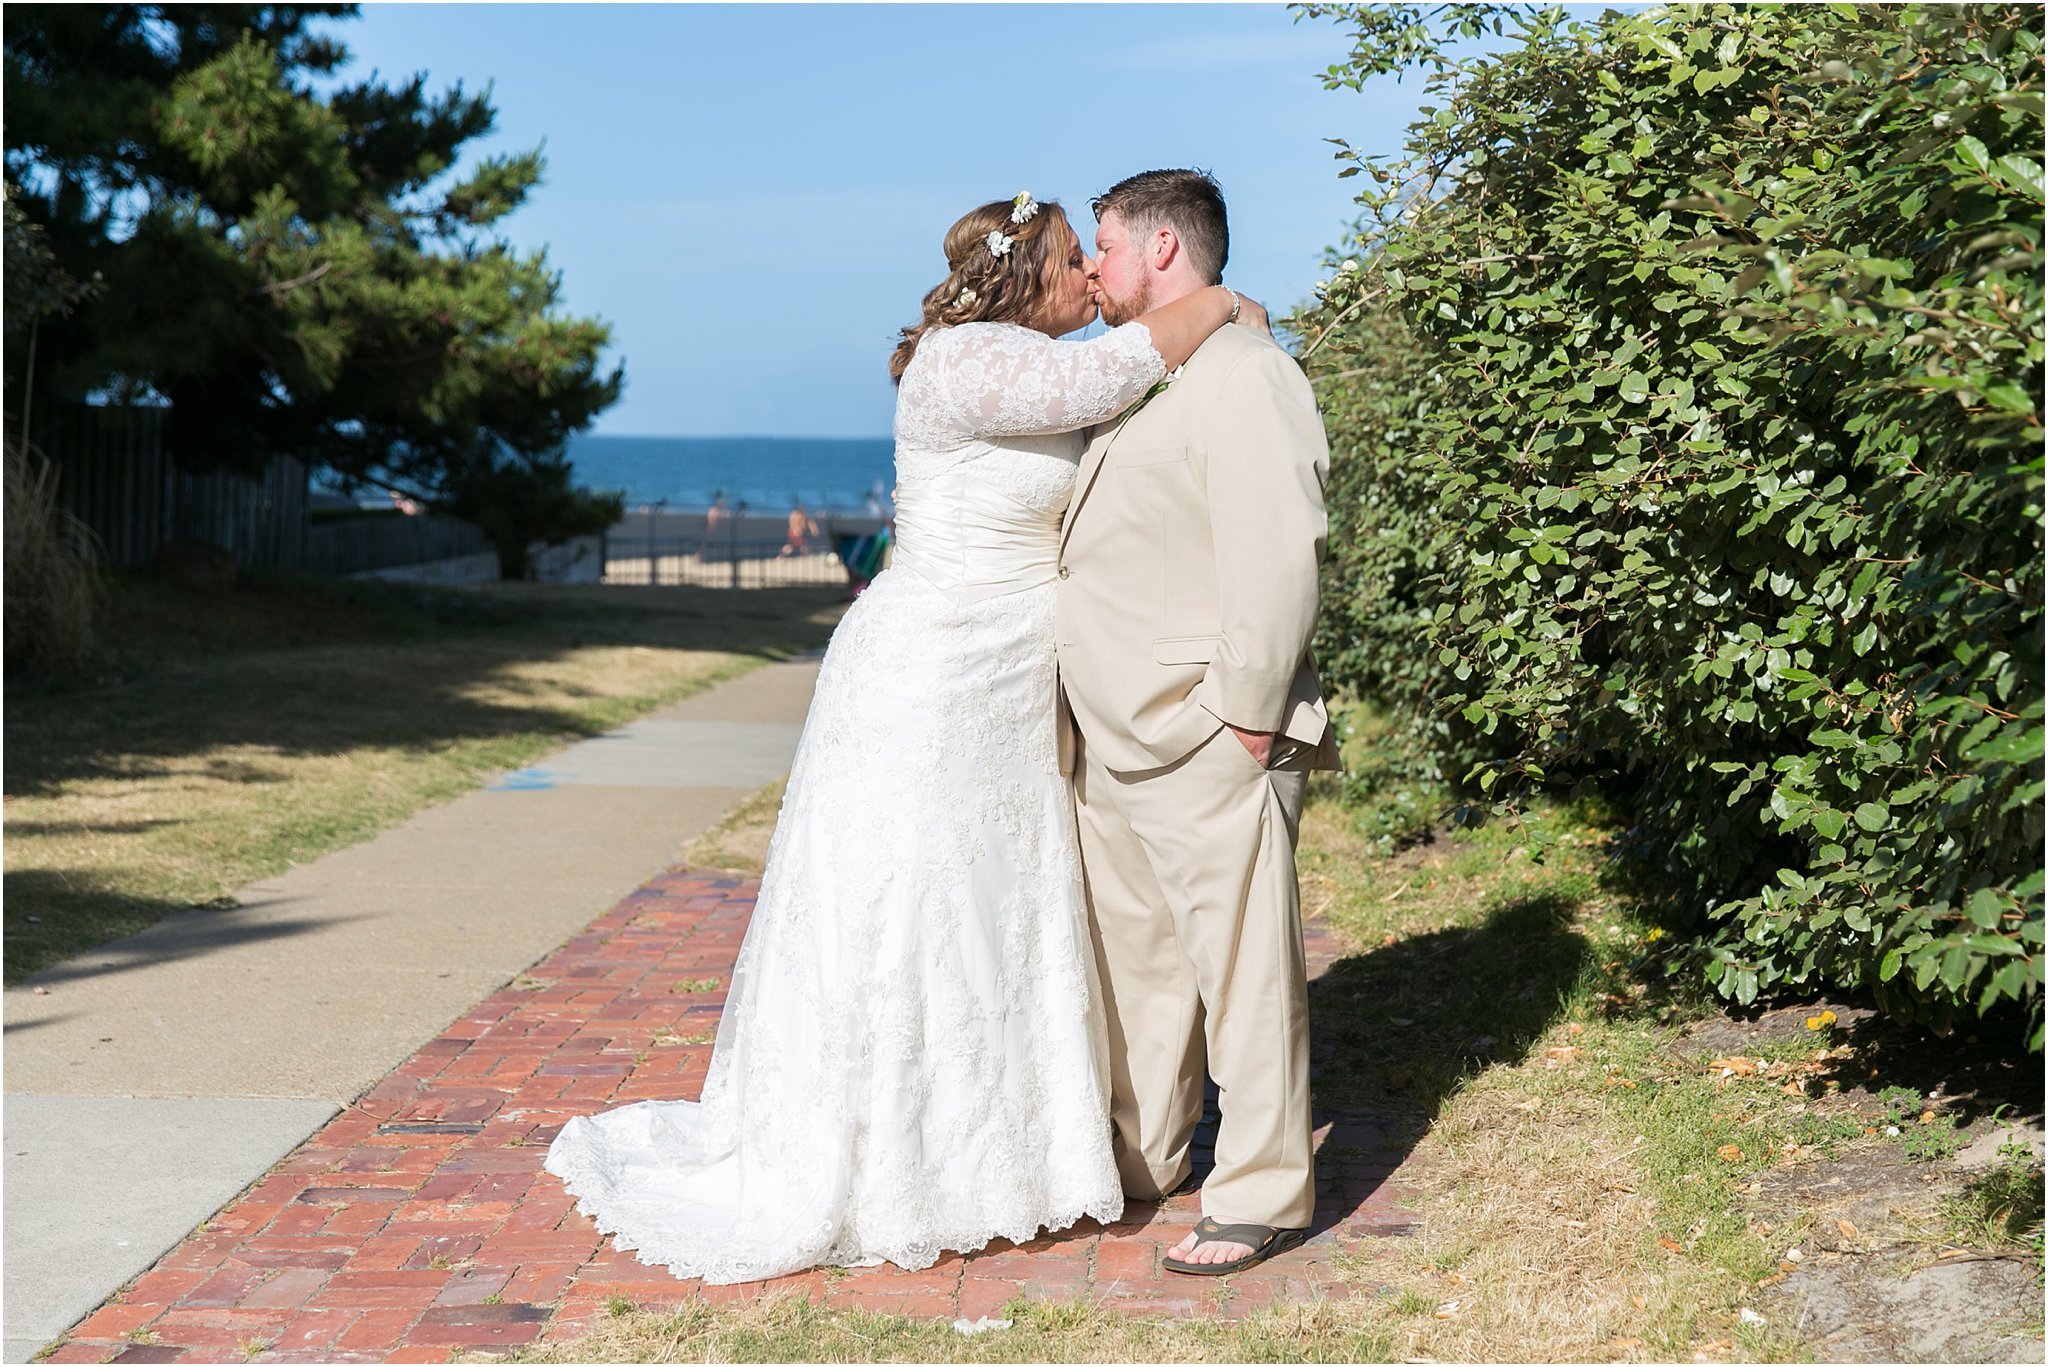 jessica_ryan_photography_virginia_beach_wedding_the_wyndham_oceanfront_beach_wedding_0857